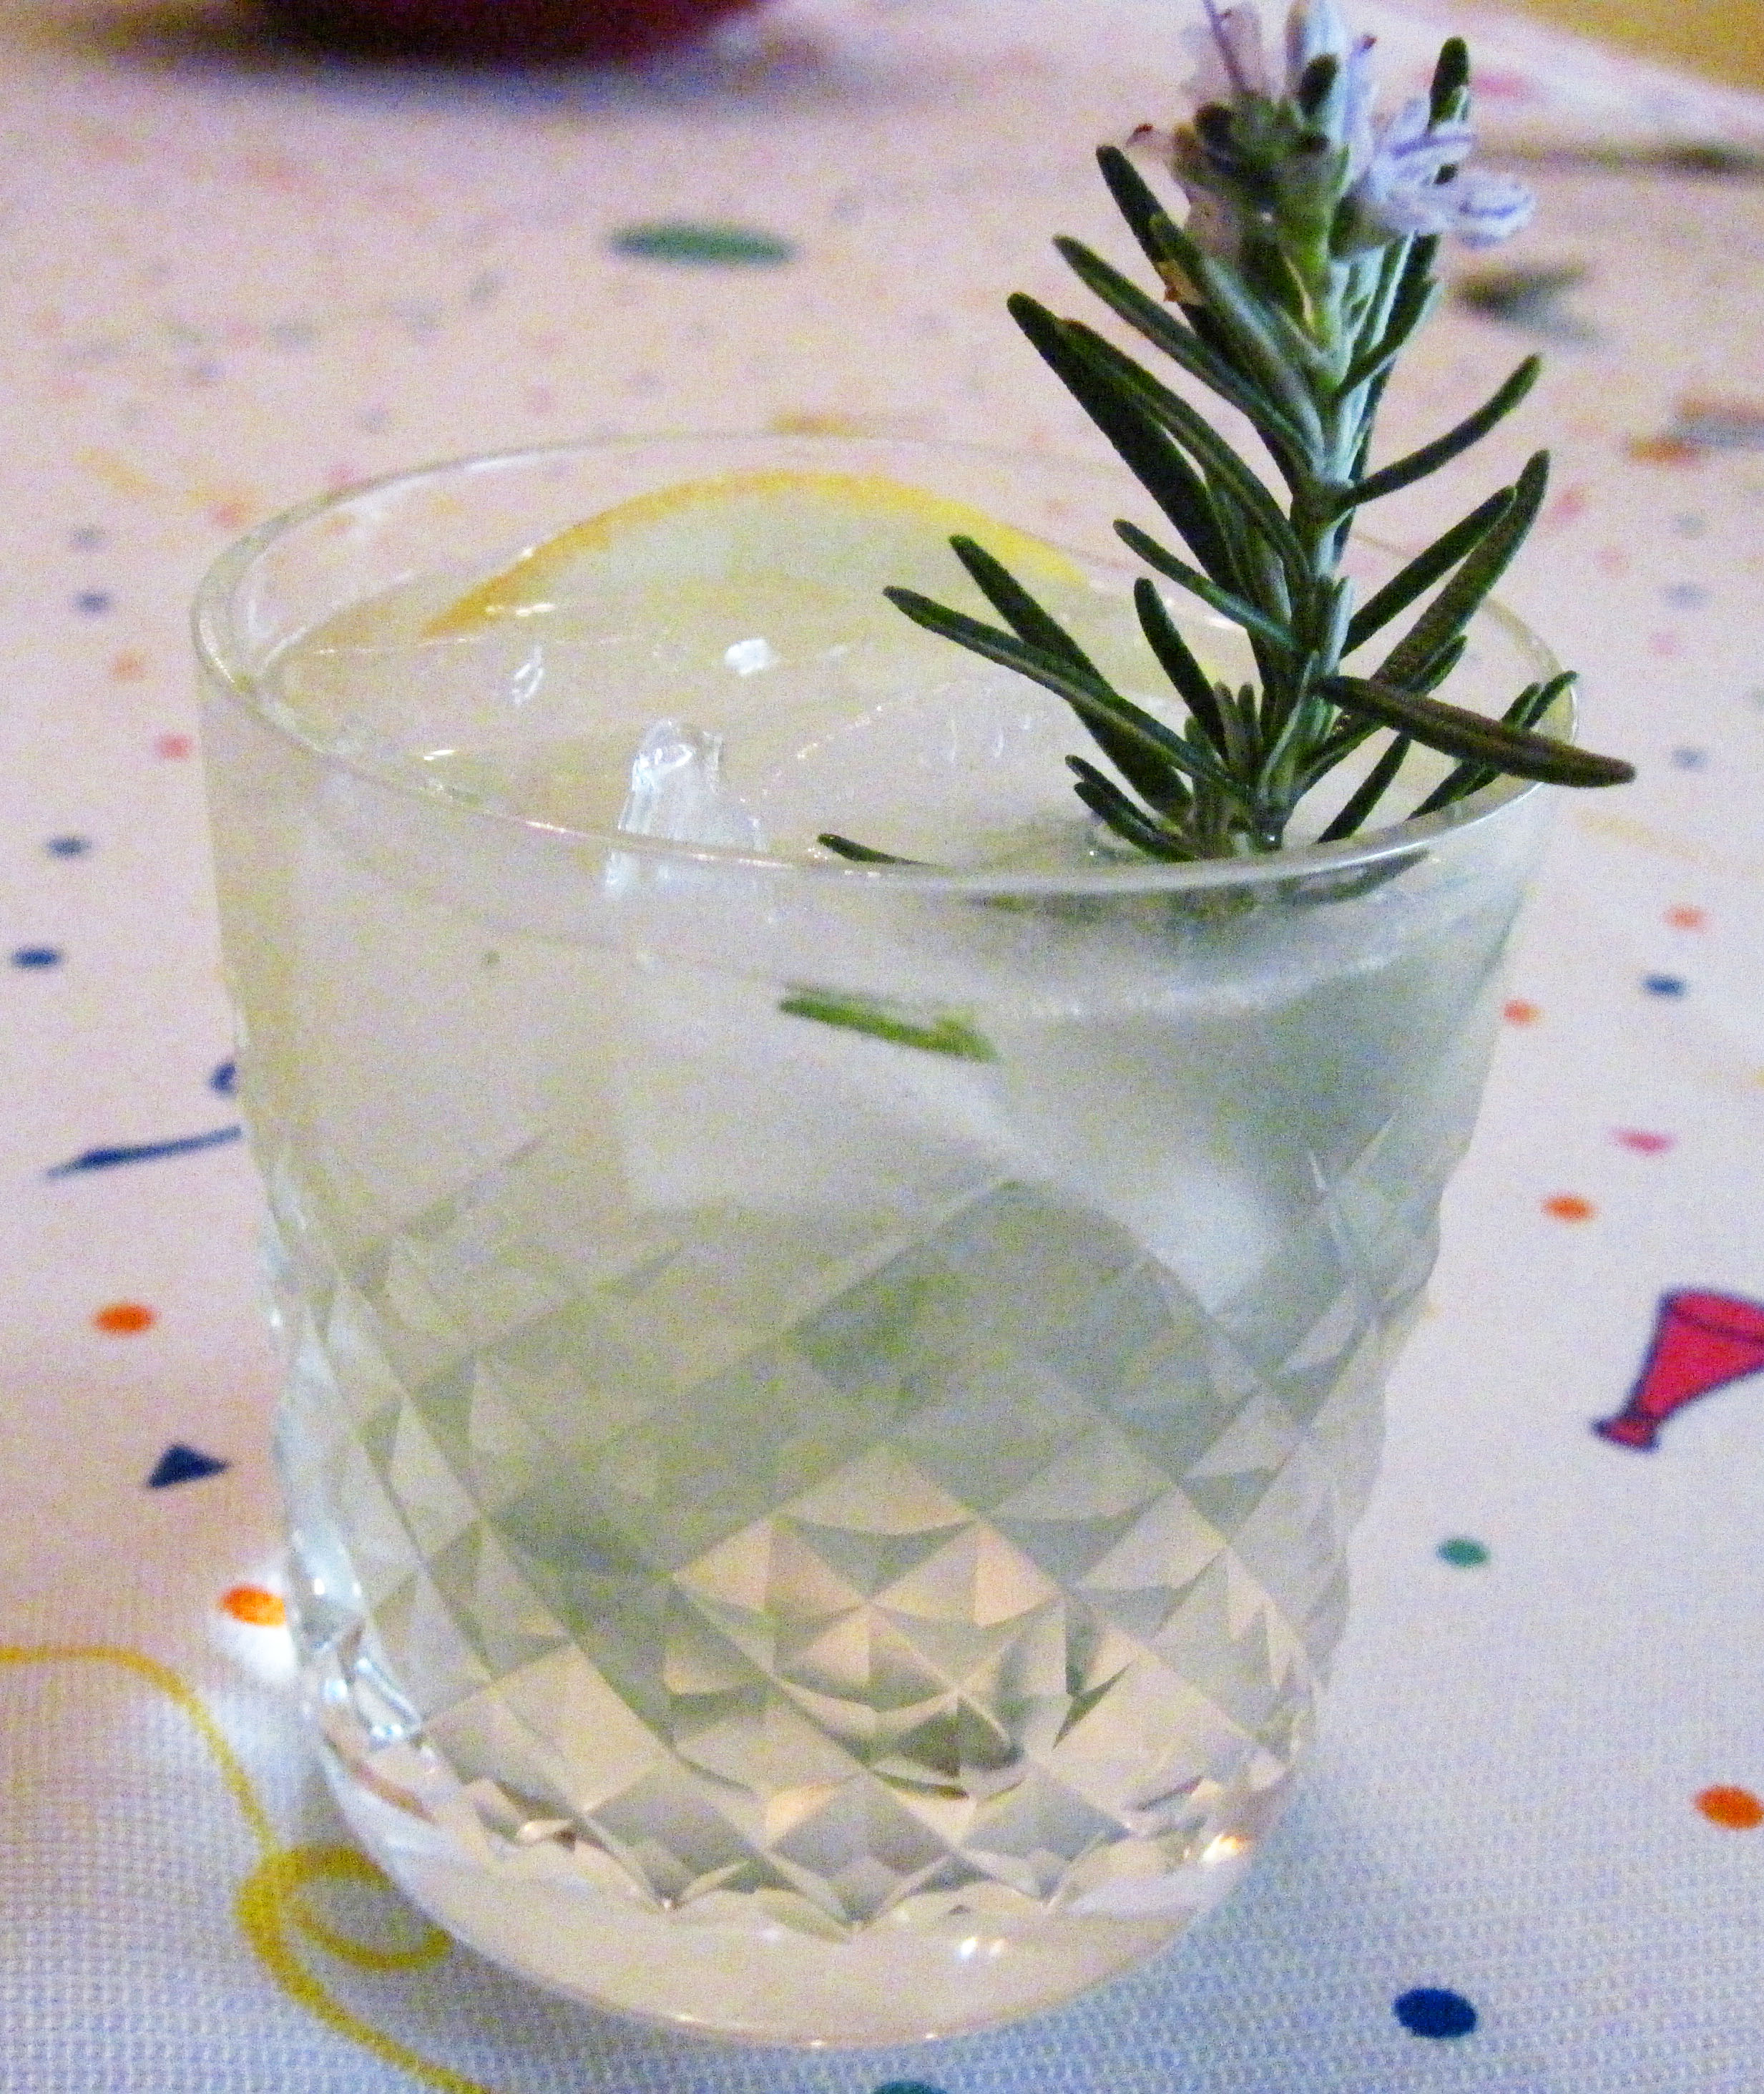 Rosemary Gin Fizz | In the kitchen with Kath